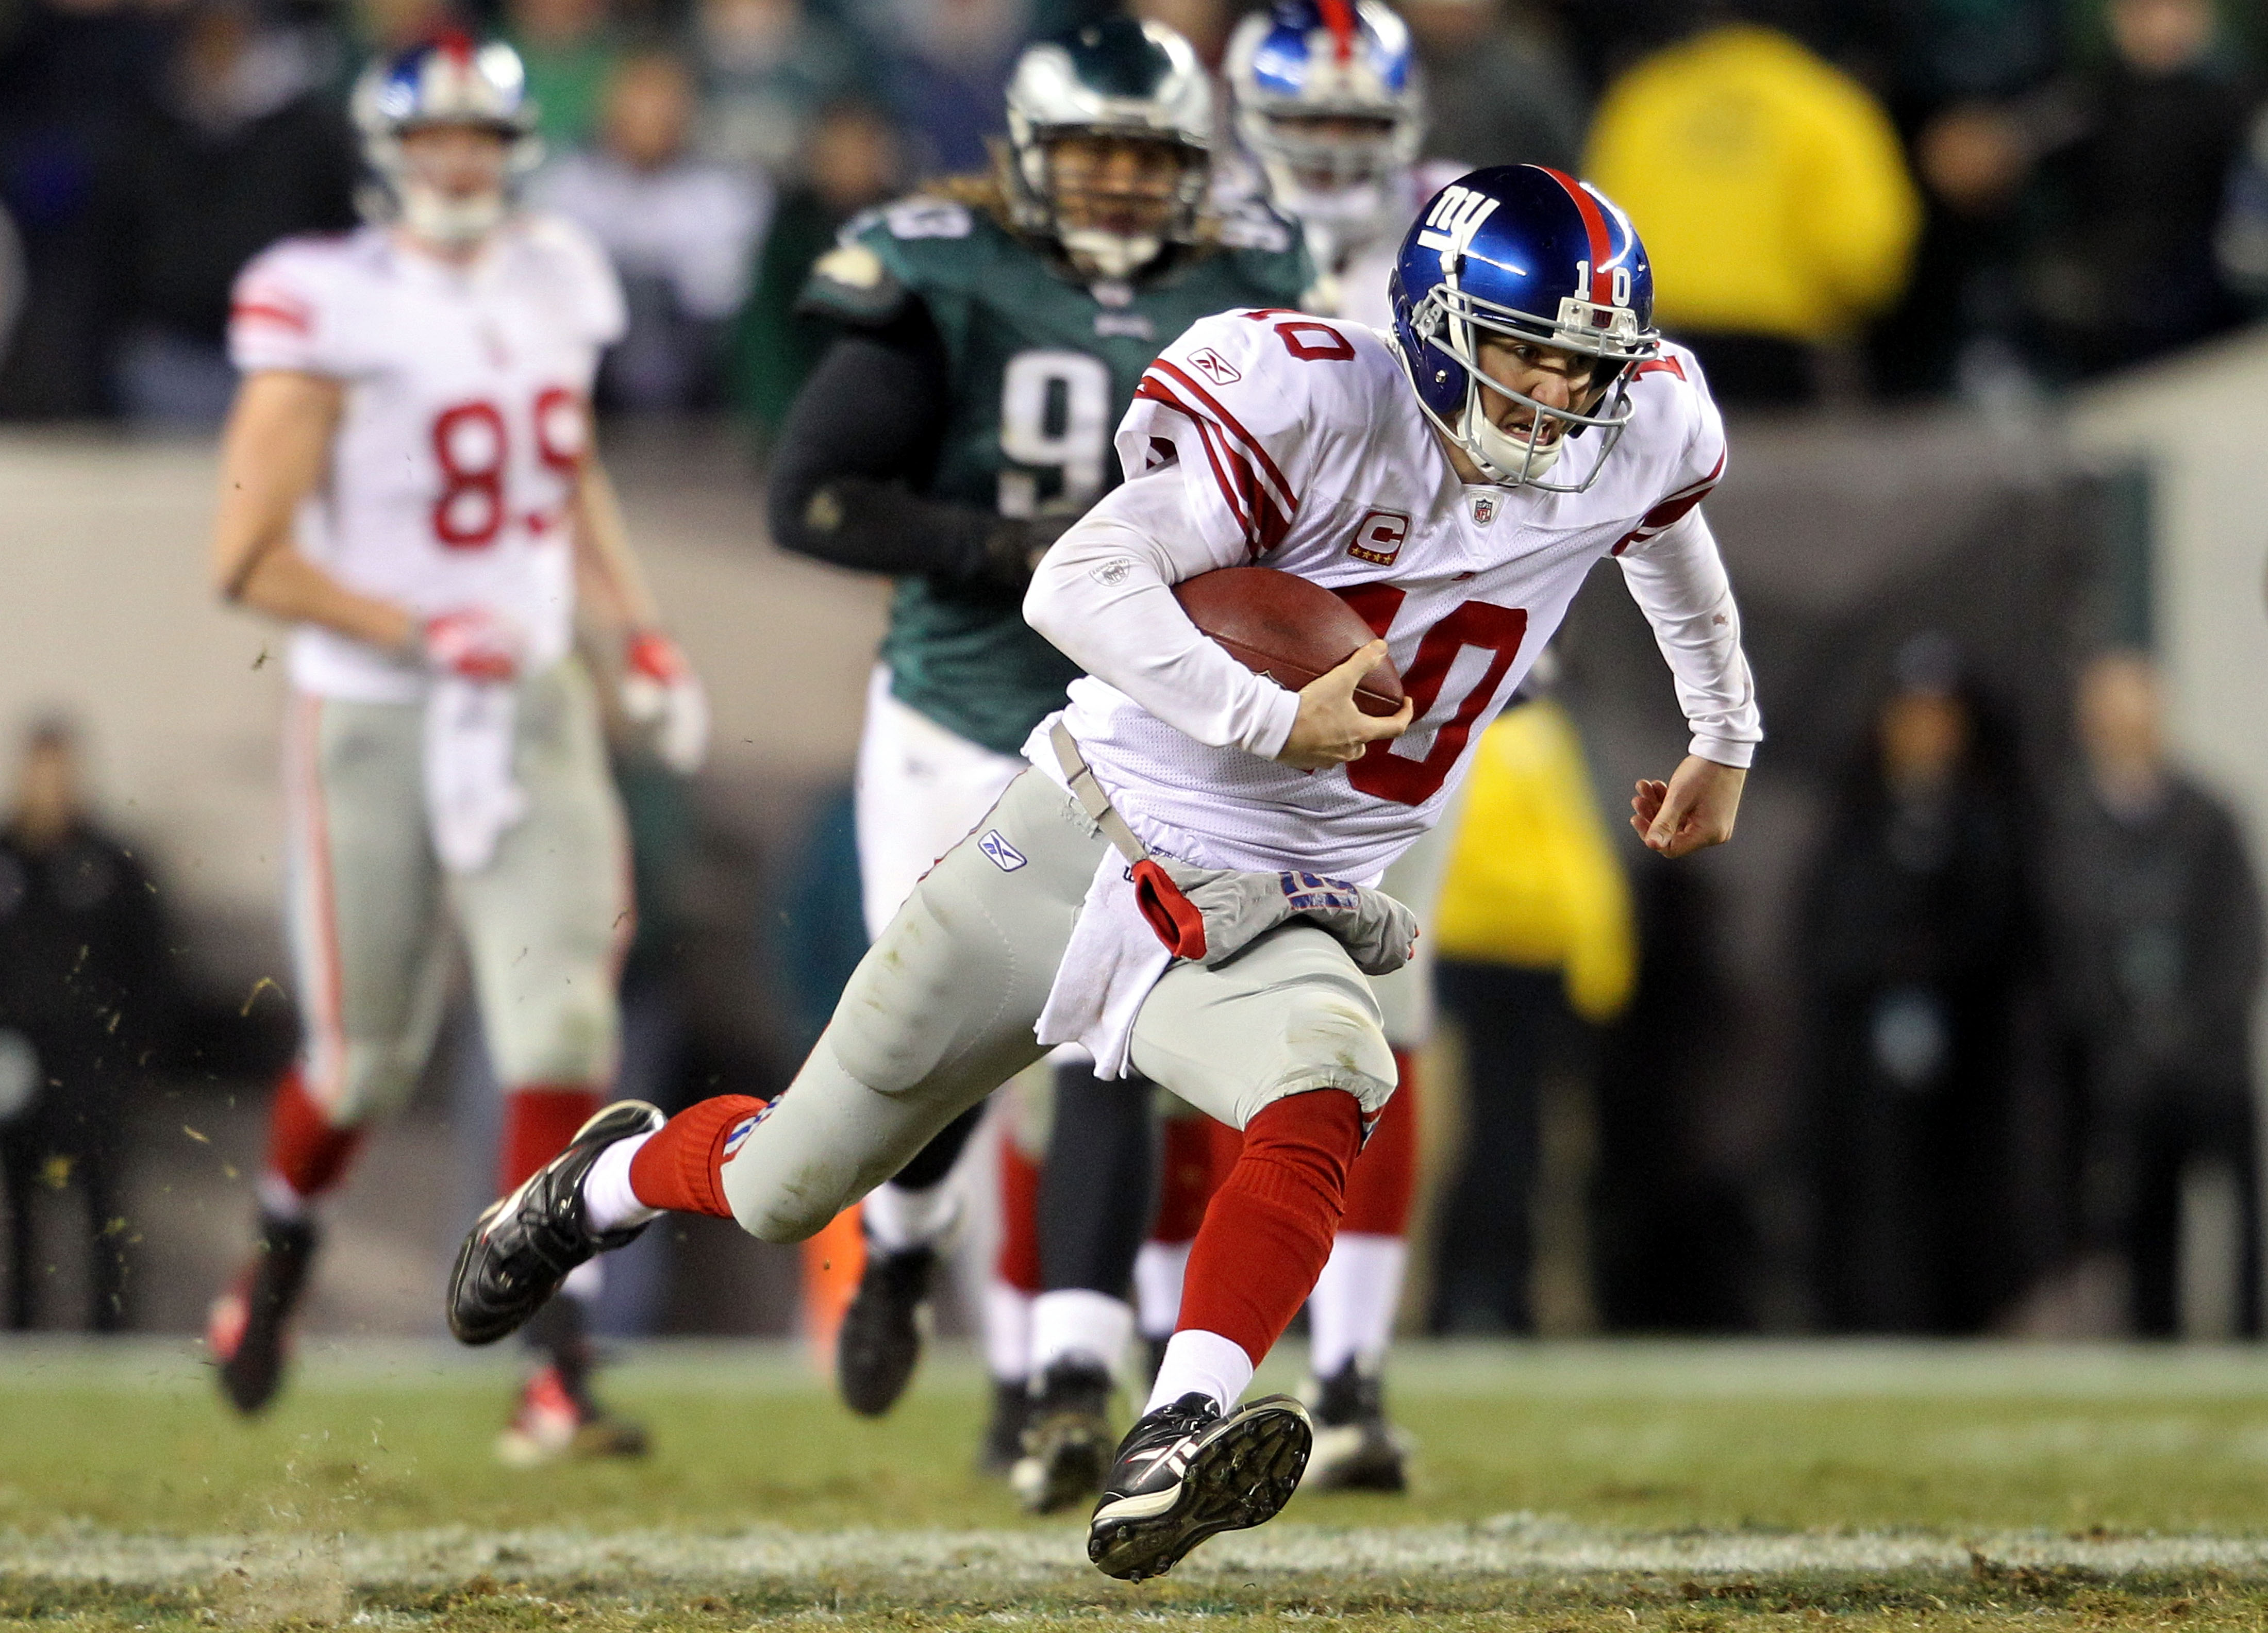 PHILADELPHIA - NOVEMBER 21:  Eli Manning #10 of the New York Giants goes to the turf after a run late in the fourth quarter against the Philadelphia Eagles at Lincoln Financial Field on November 21, 2010 in Philadelphia, Pennsylvania. Manning fumbled on t